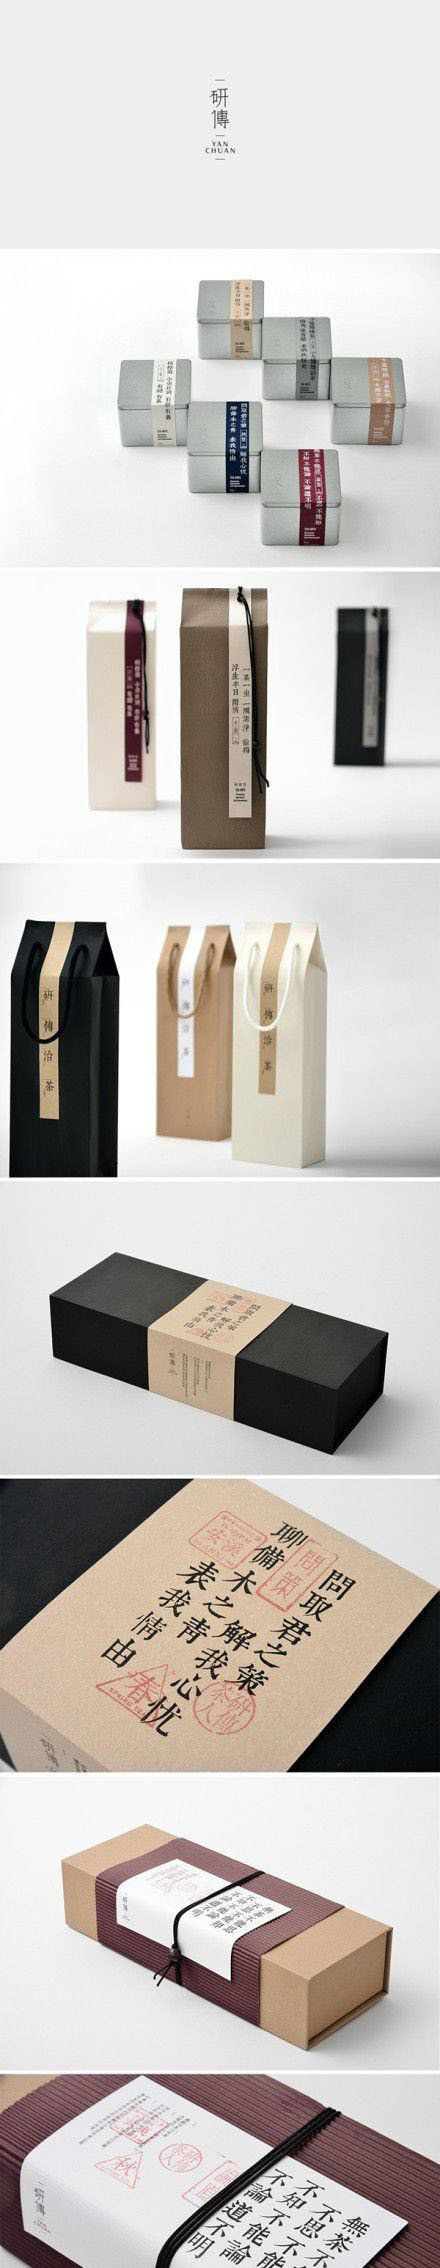 Yan Chuan, Chinese minimalist tea via @mariathmorais #Chinese #Tea #Packaging